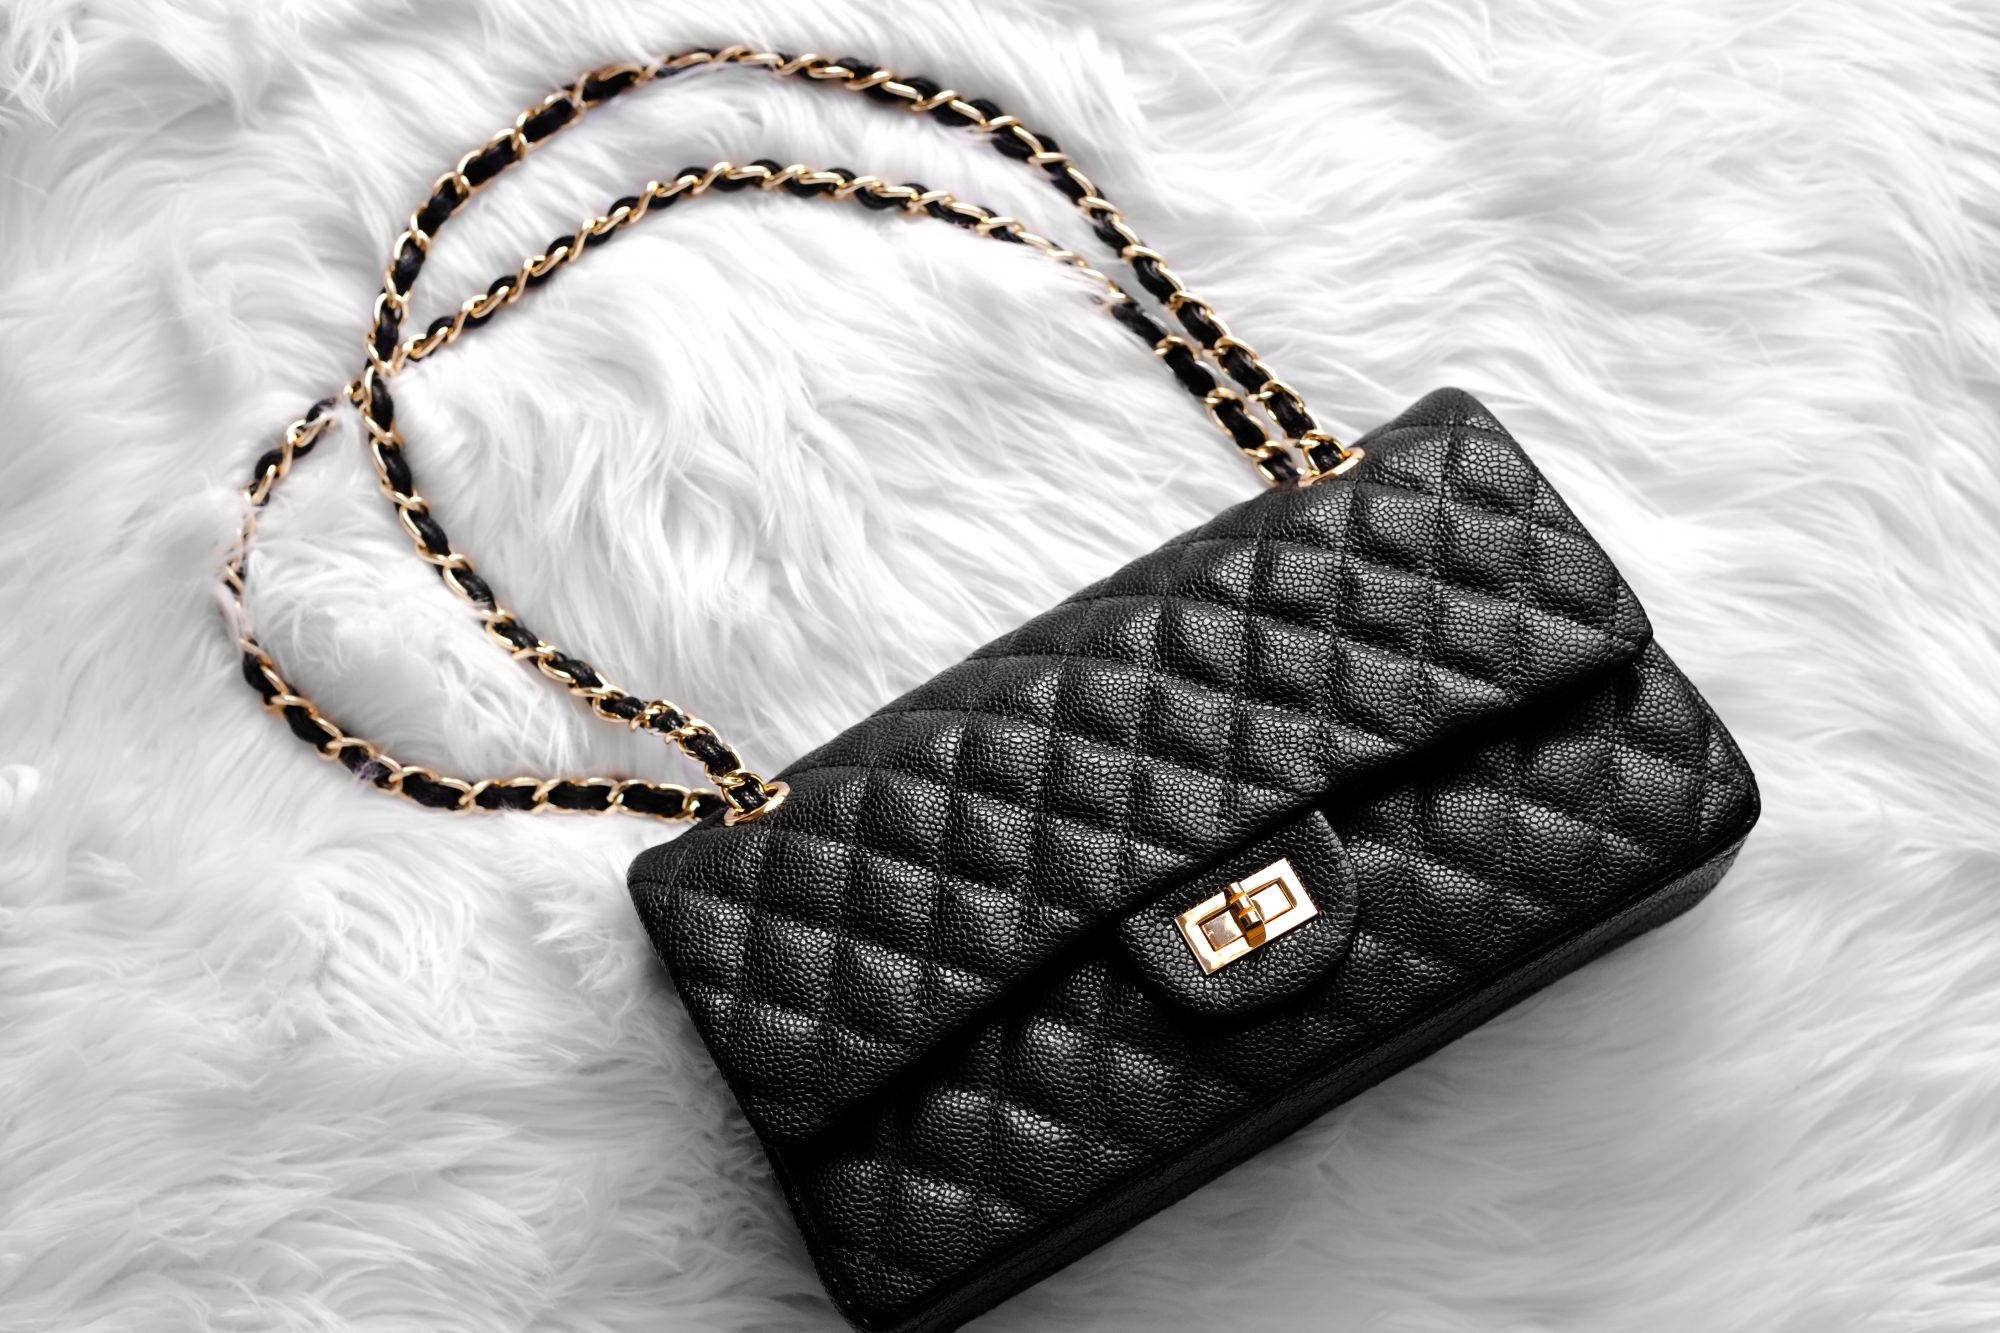 ecda70d3c769 Looking for a Chanel handbag without the hefty price tag? This genuine  leather one from ...